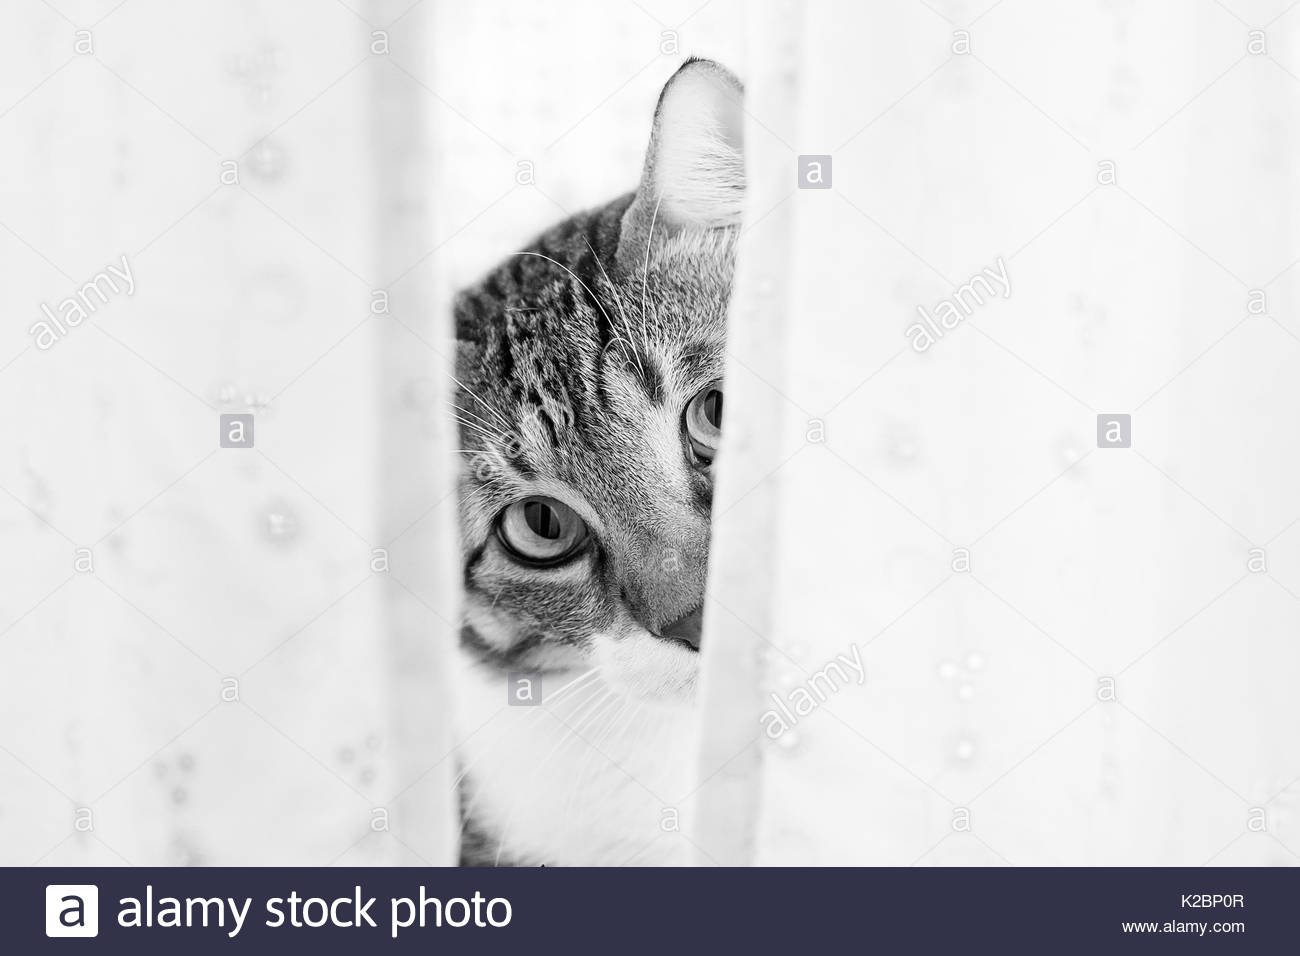 Cat looks out from behind a shower curtain - Stock Image